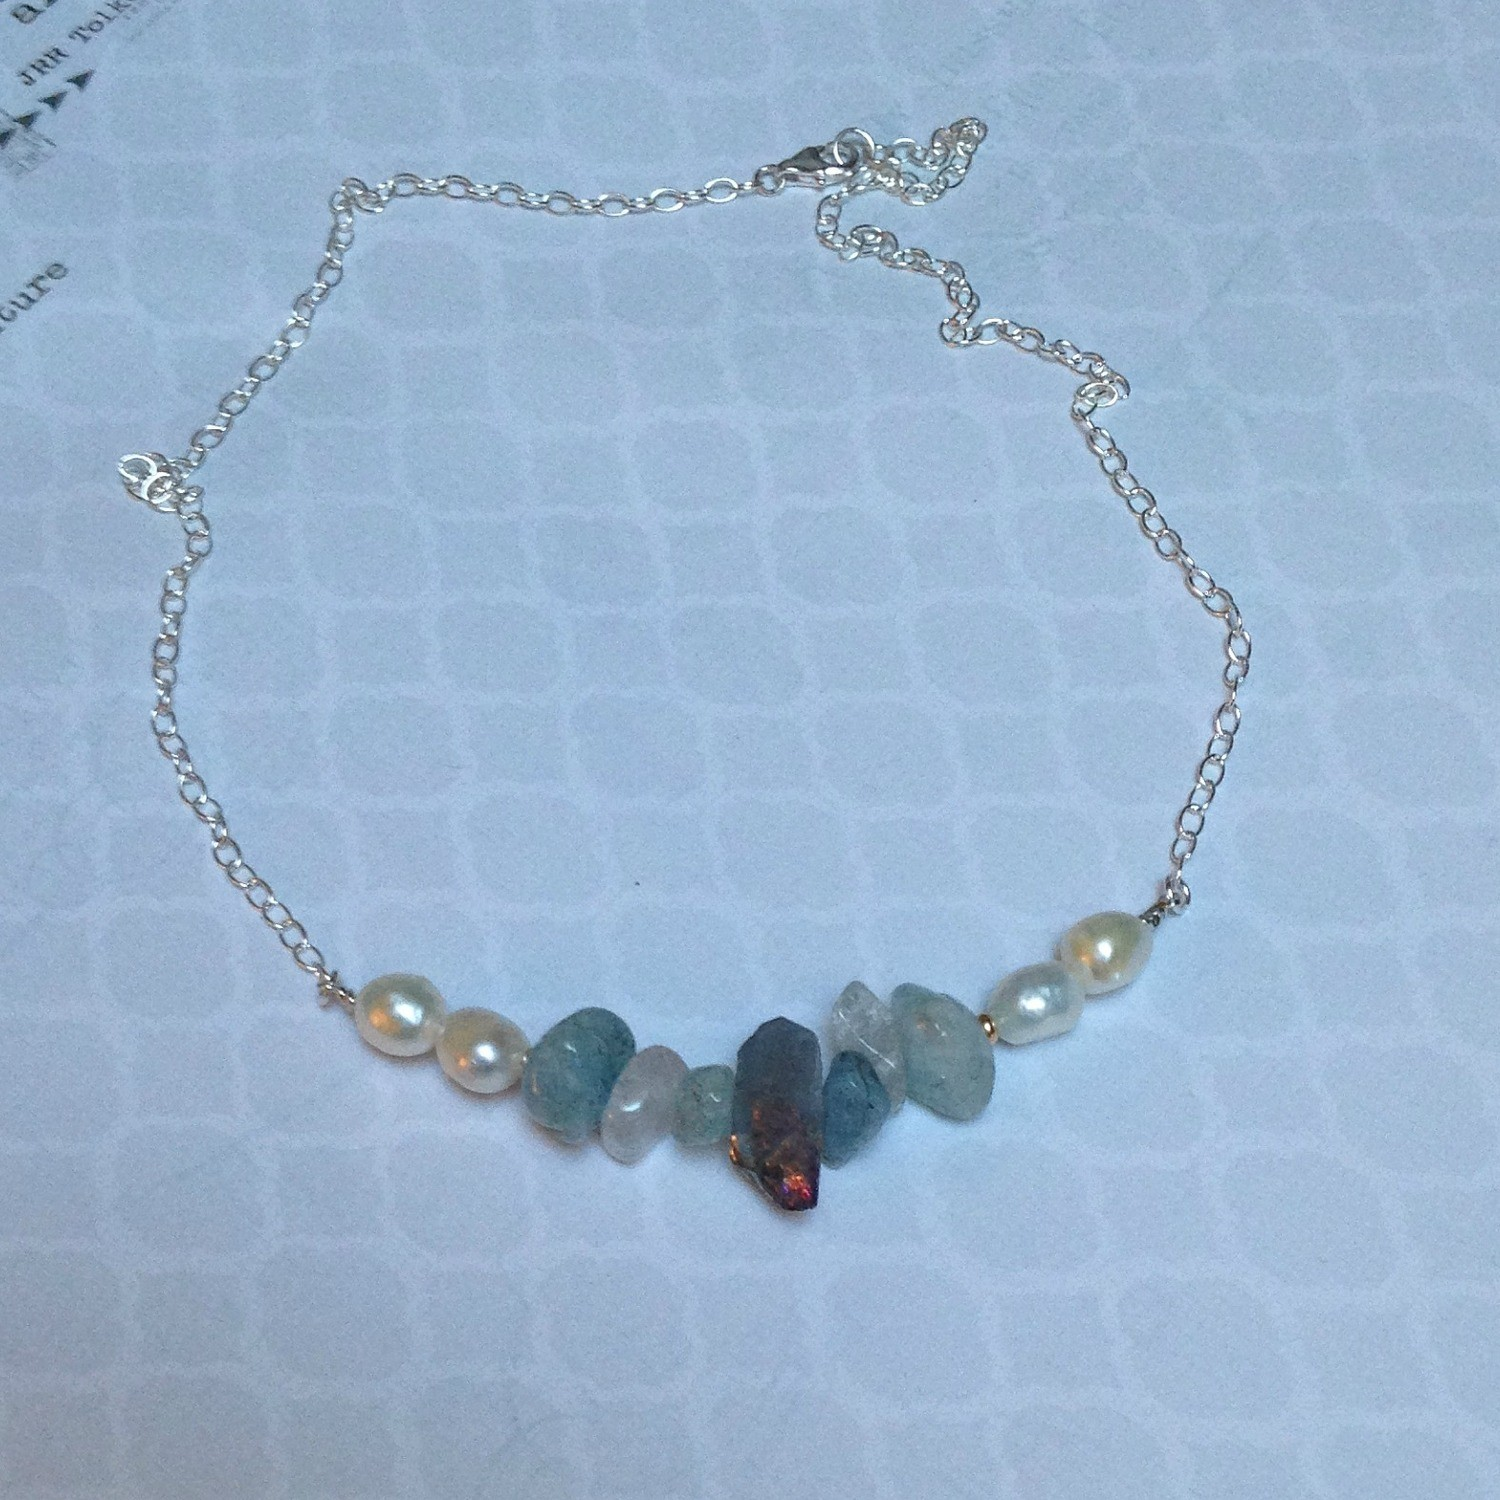 Diana Sterling Necklace